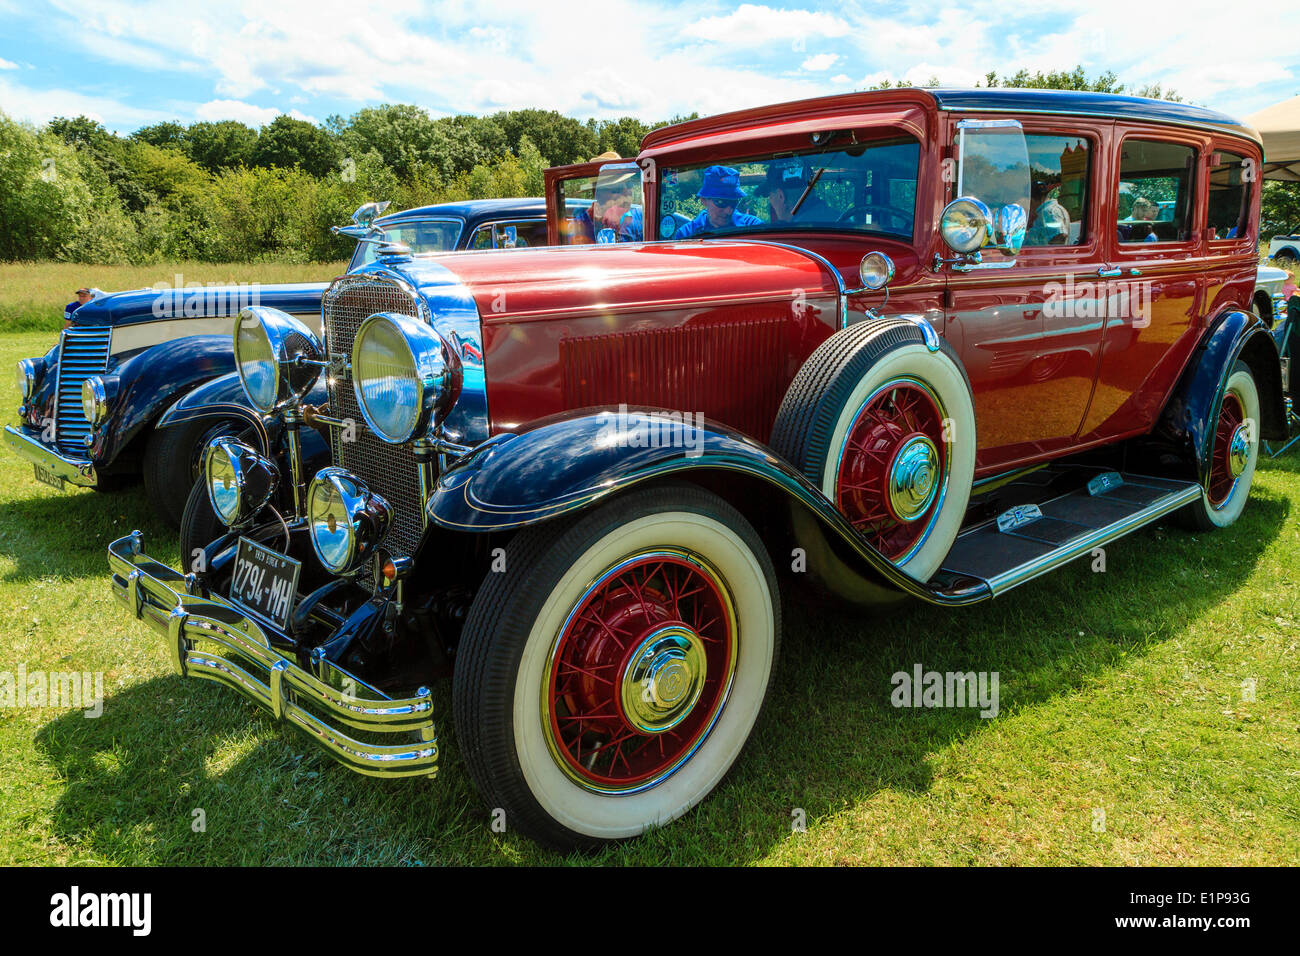 Classic 1930s American Buick car on display at Bromley Pageant of Motoring. - Stock Image